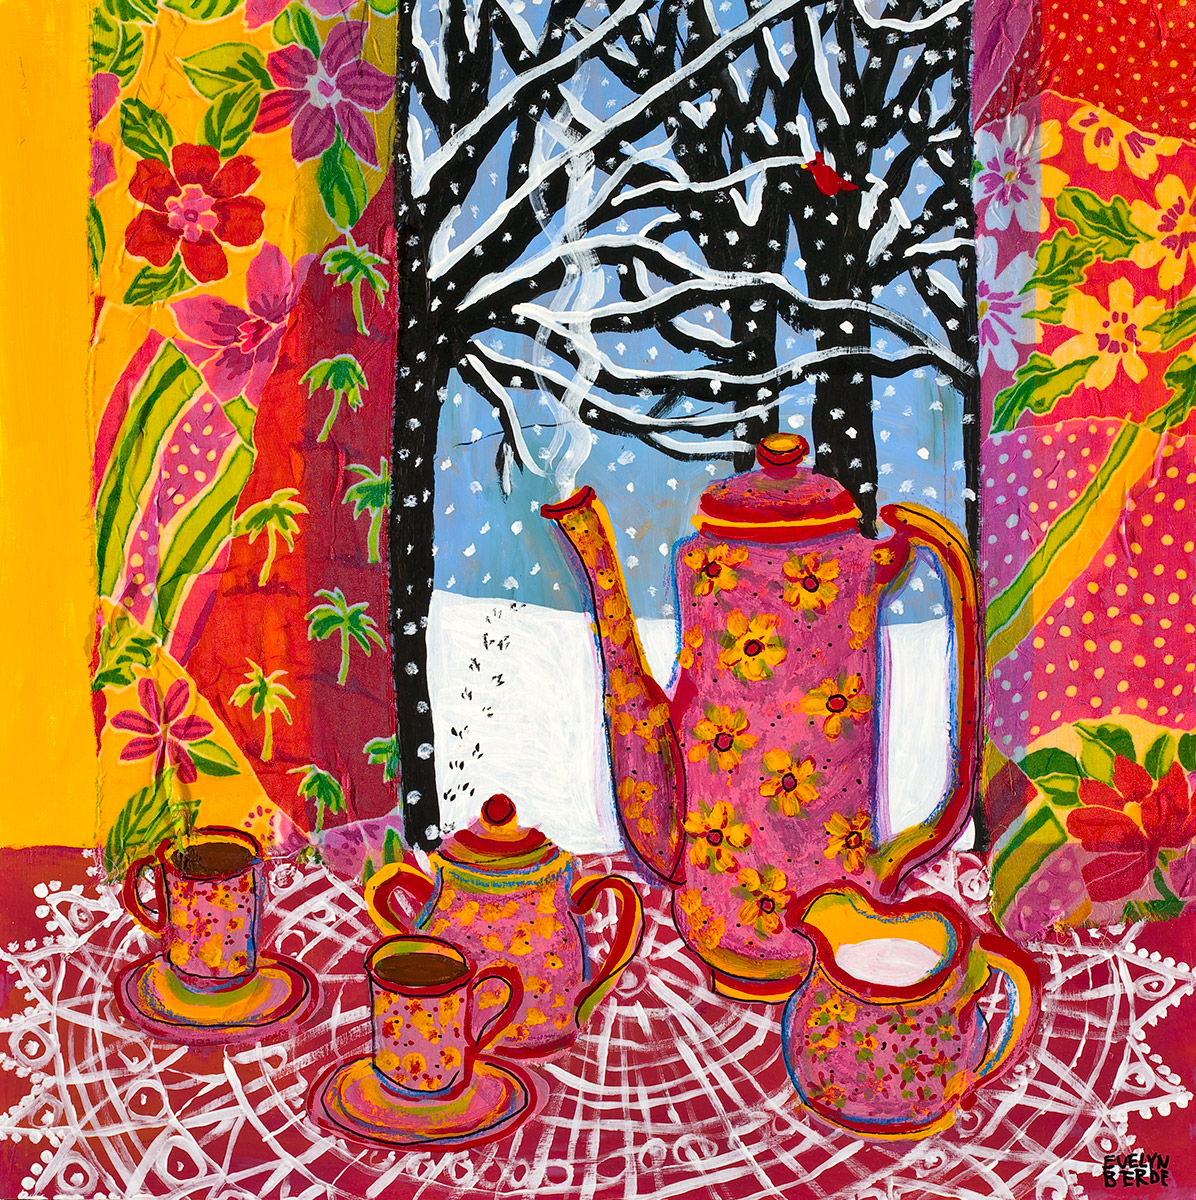 Painting by: Evelyn Berde